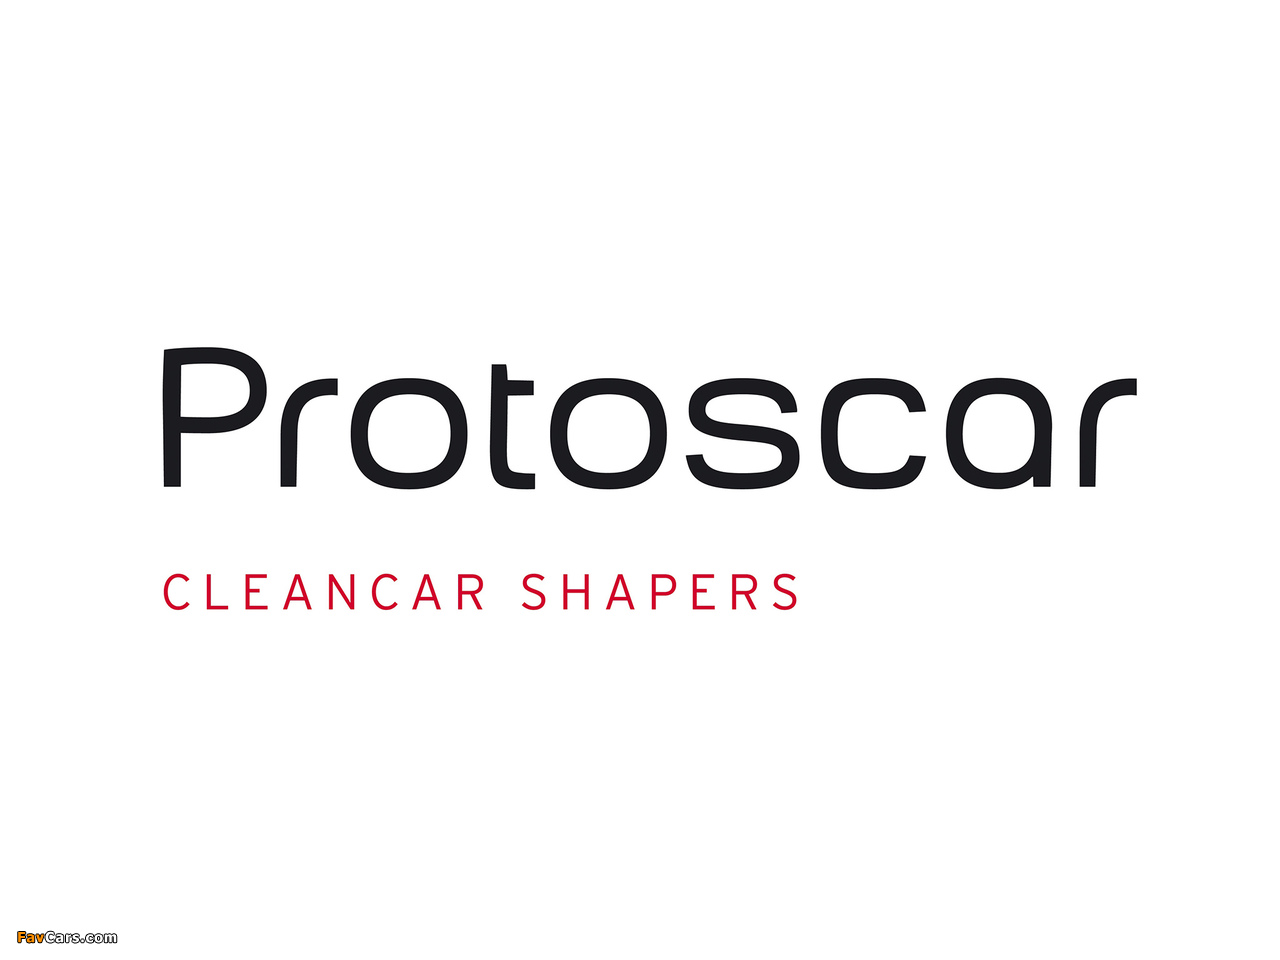 Images of Protoscar (1280 x 960)